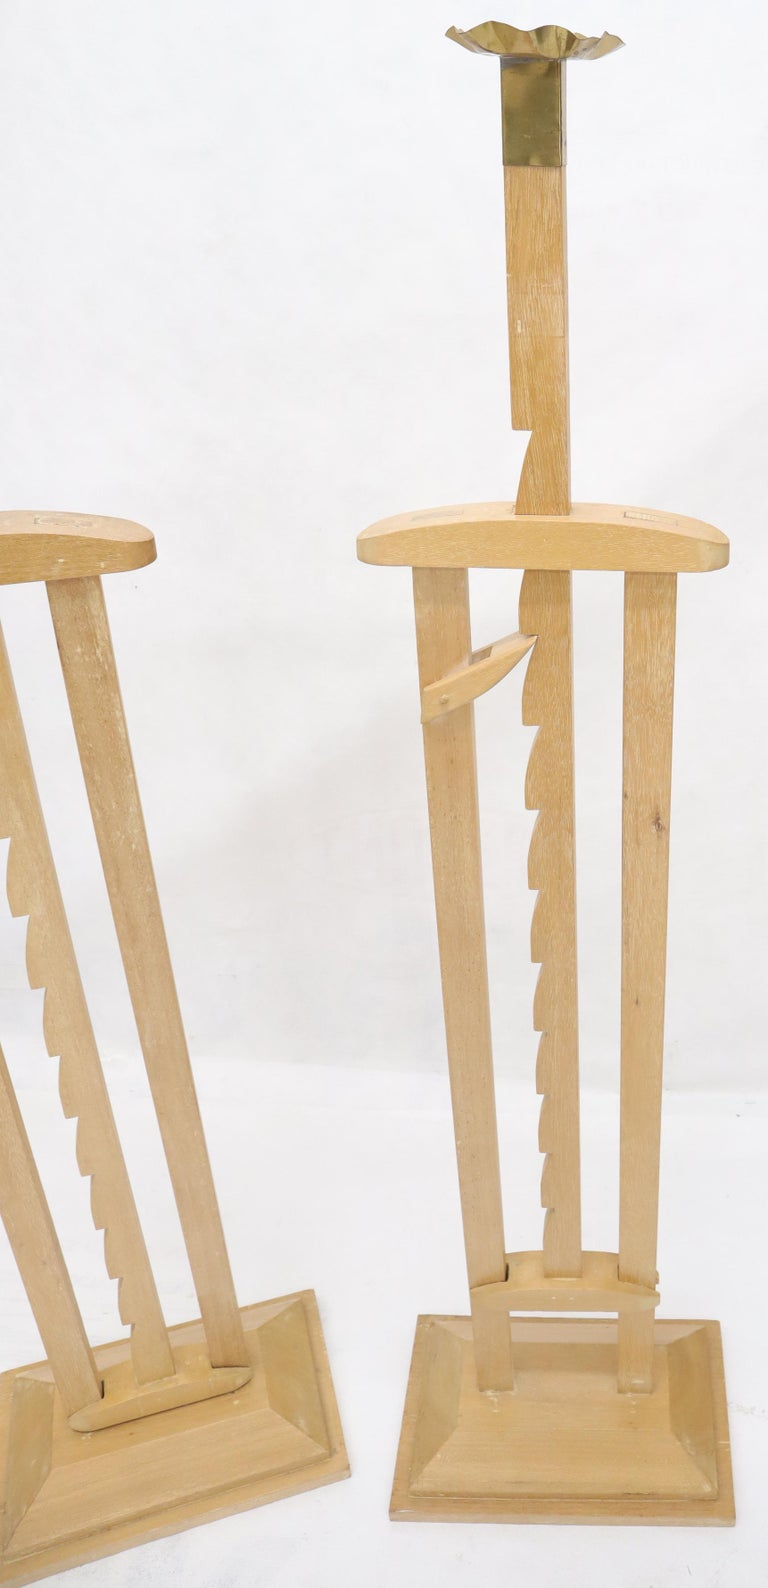 Carved Pair of Large Oversize Adjustable Candle Holders Sticks  For Sale